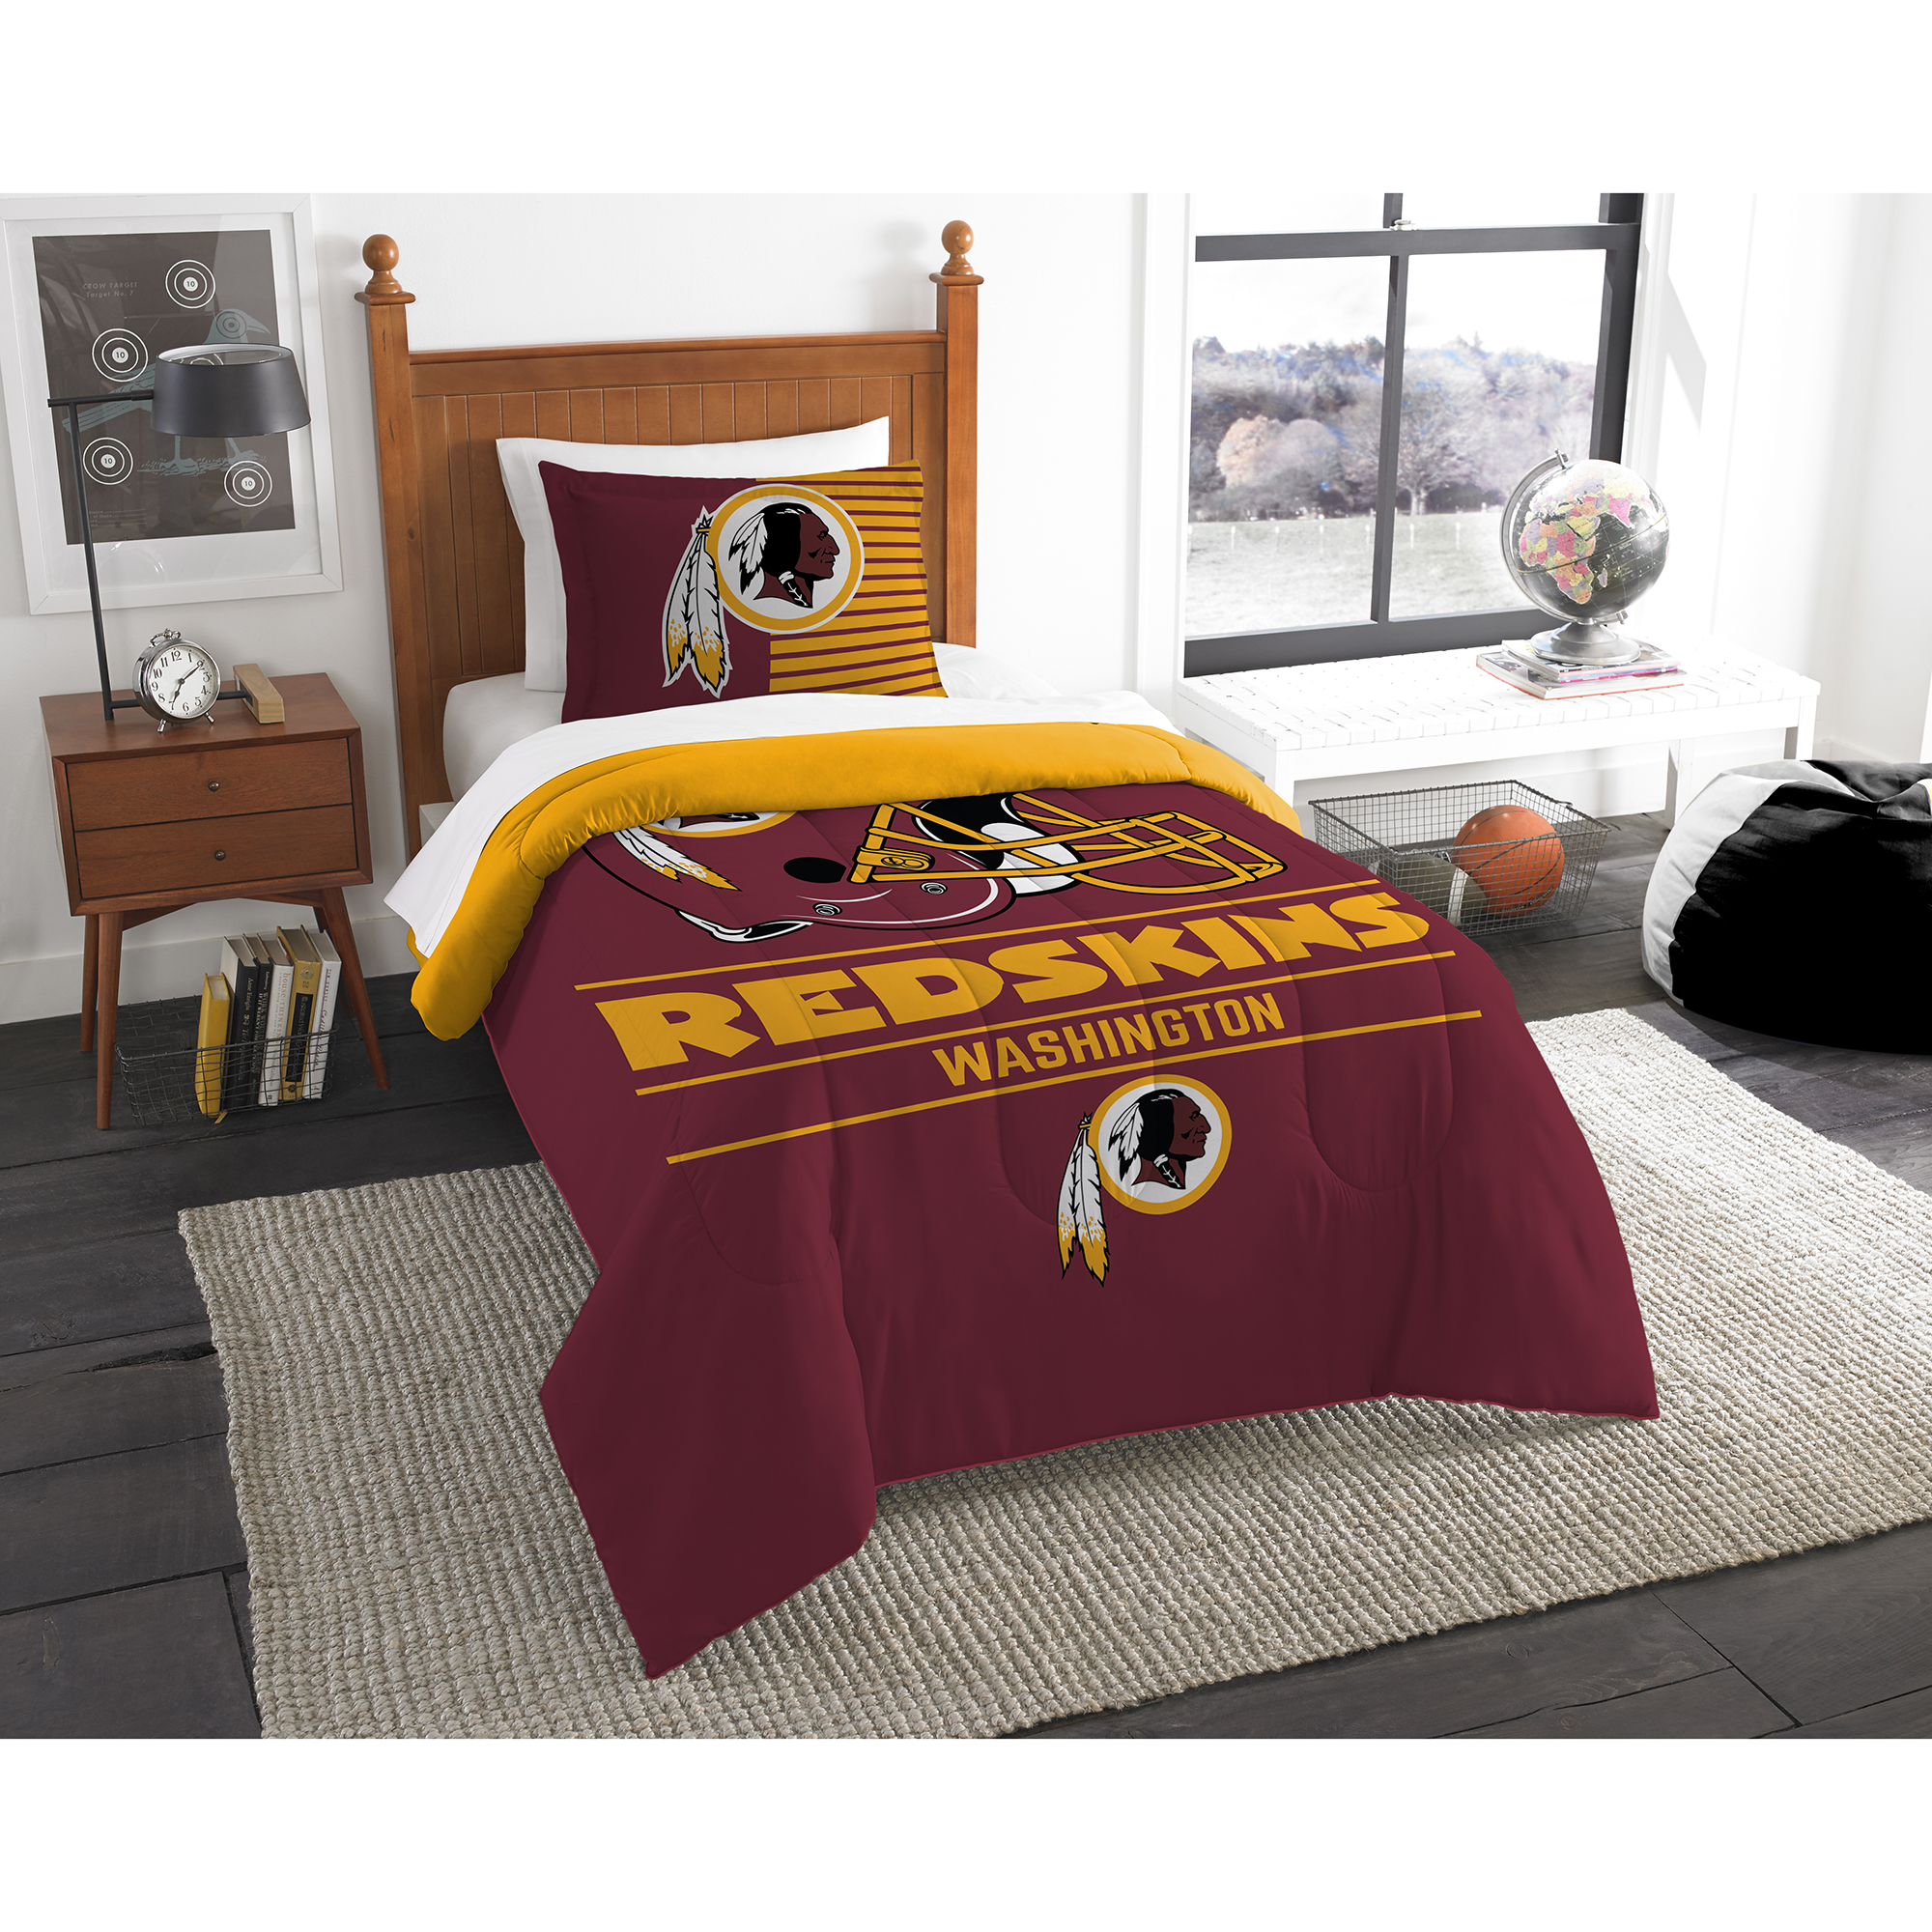 Washington Redskins The Northwest Company NFL Draft Twin Comforter Set - No Size